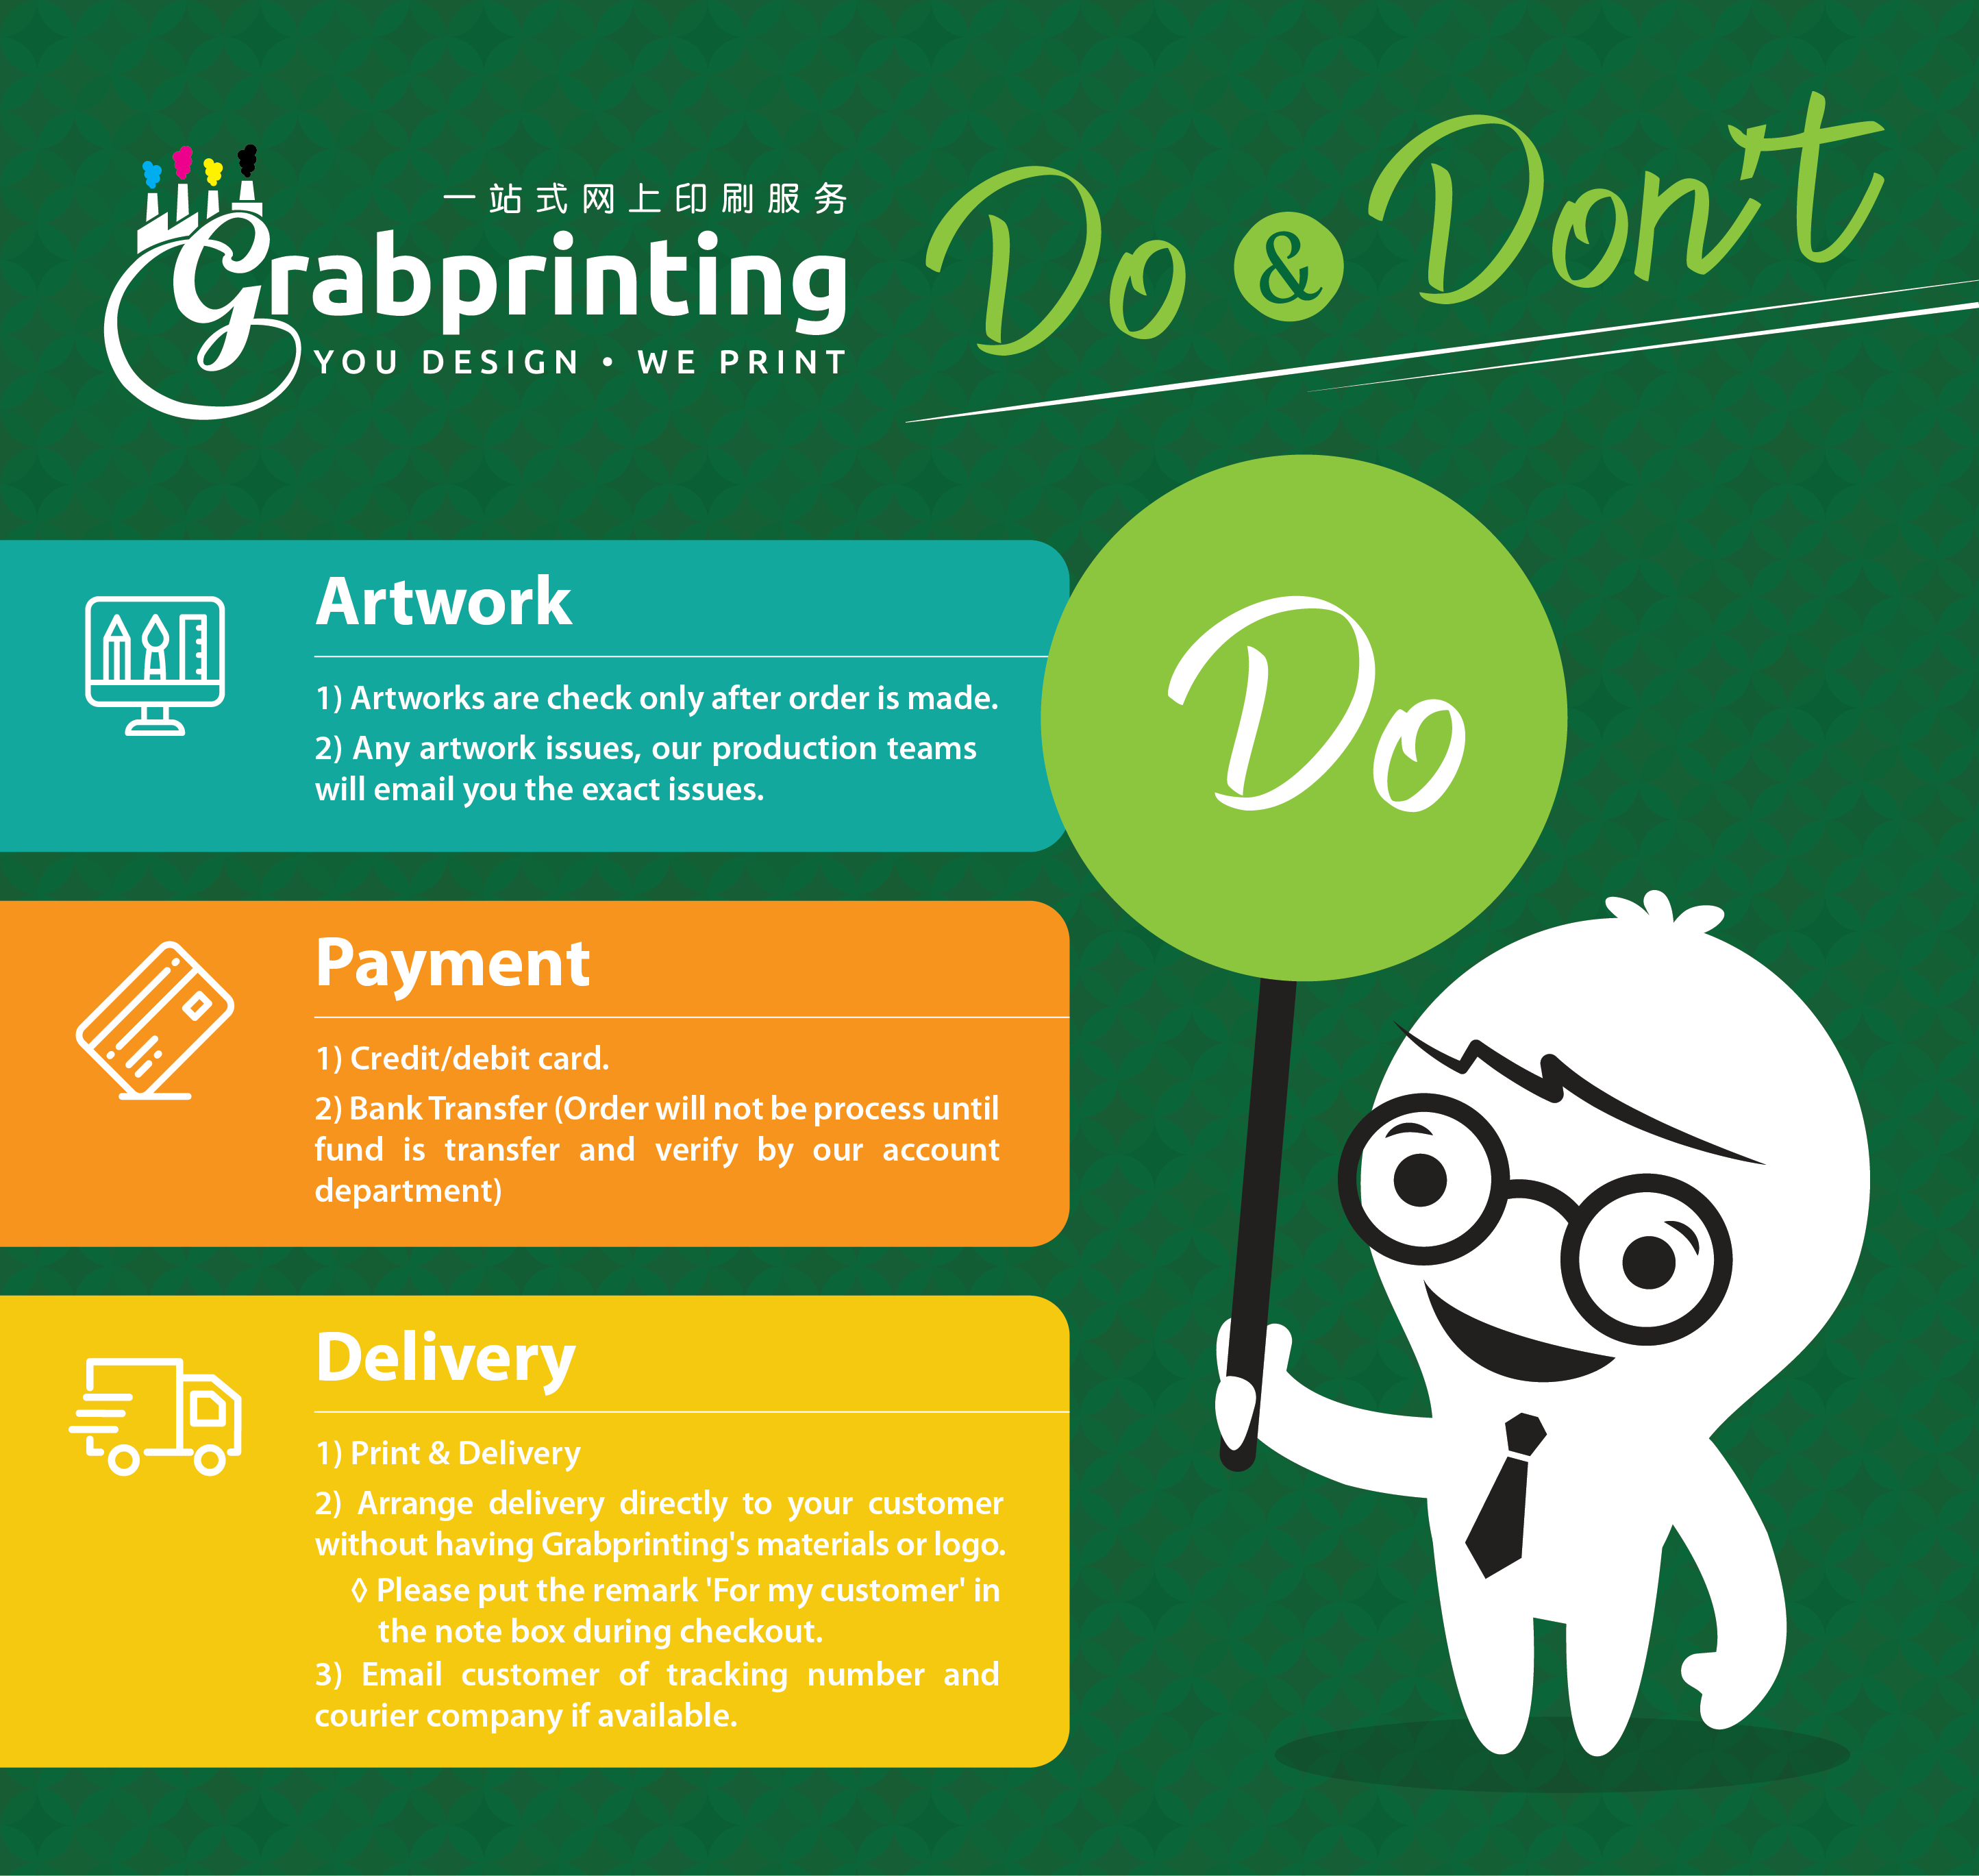 Grabprinting dos and dont's grabprinting do dont do